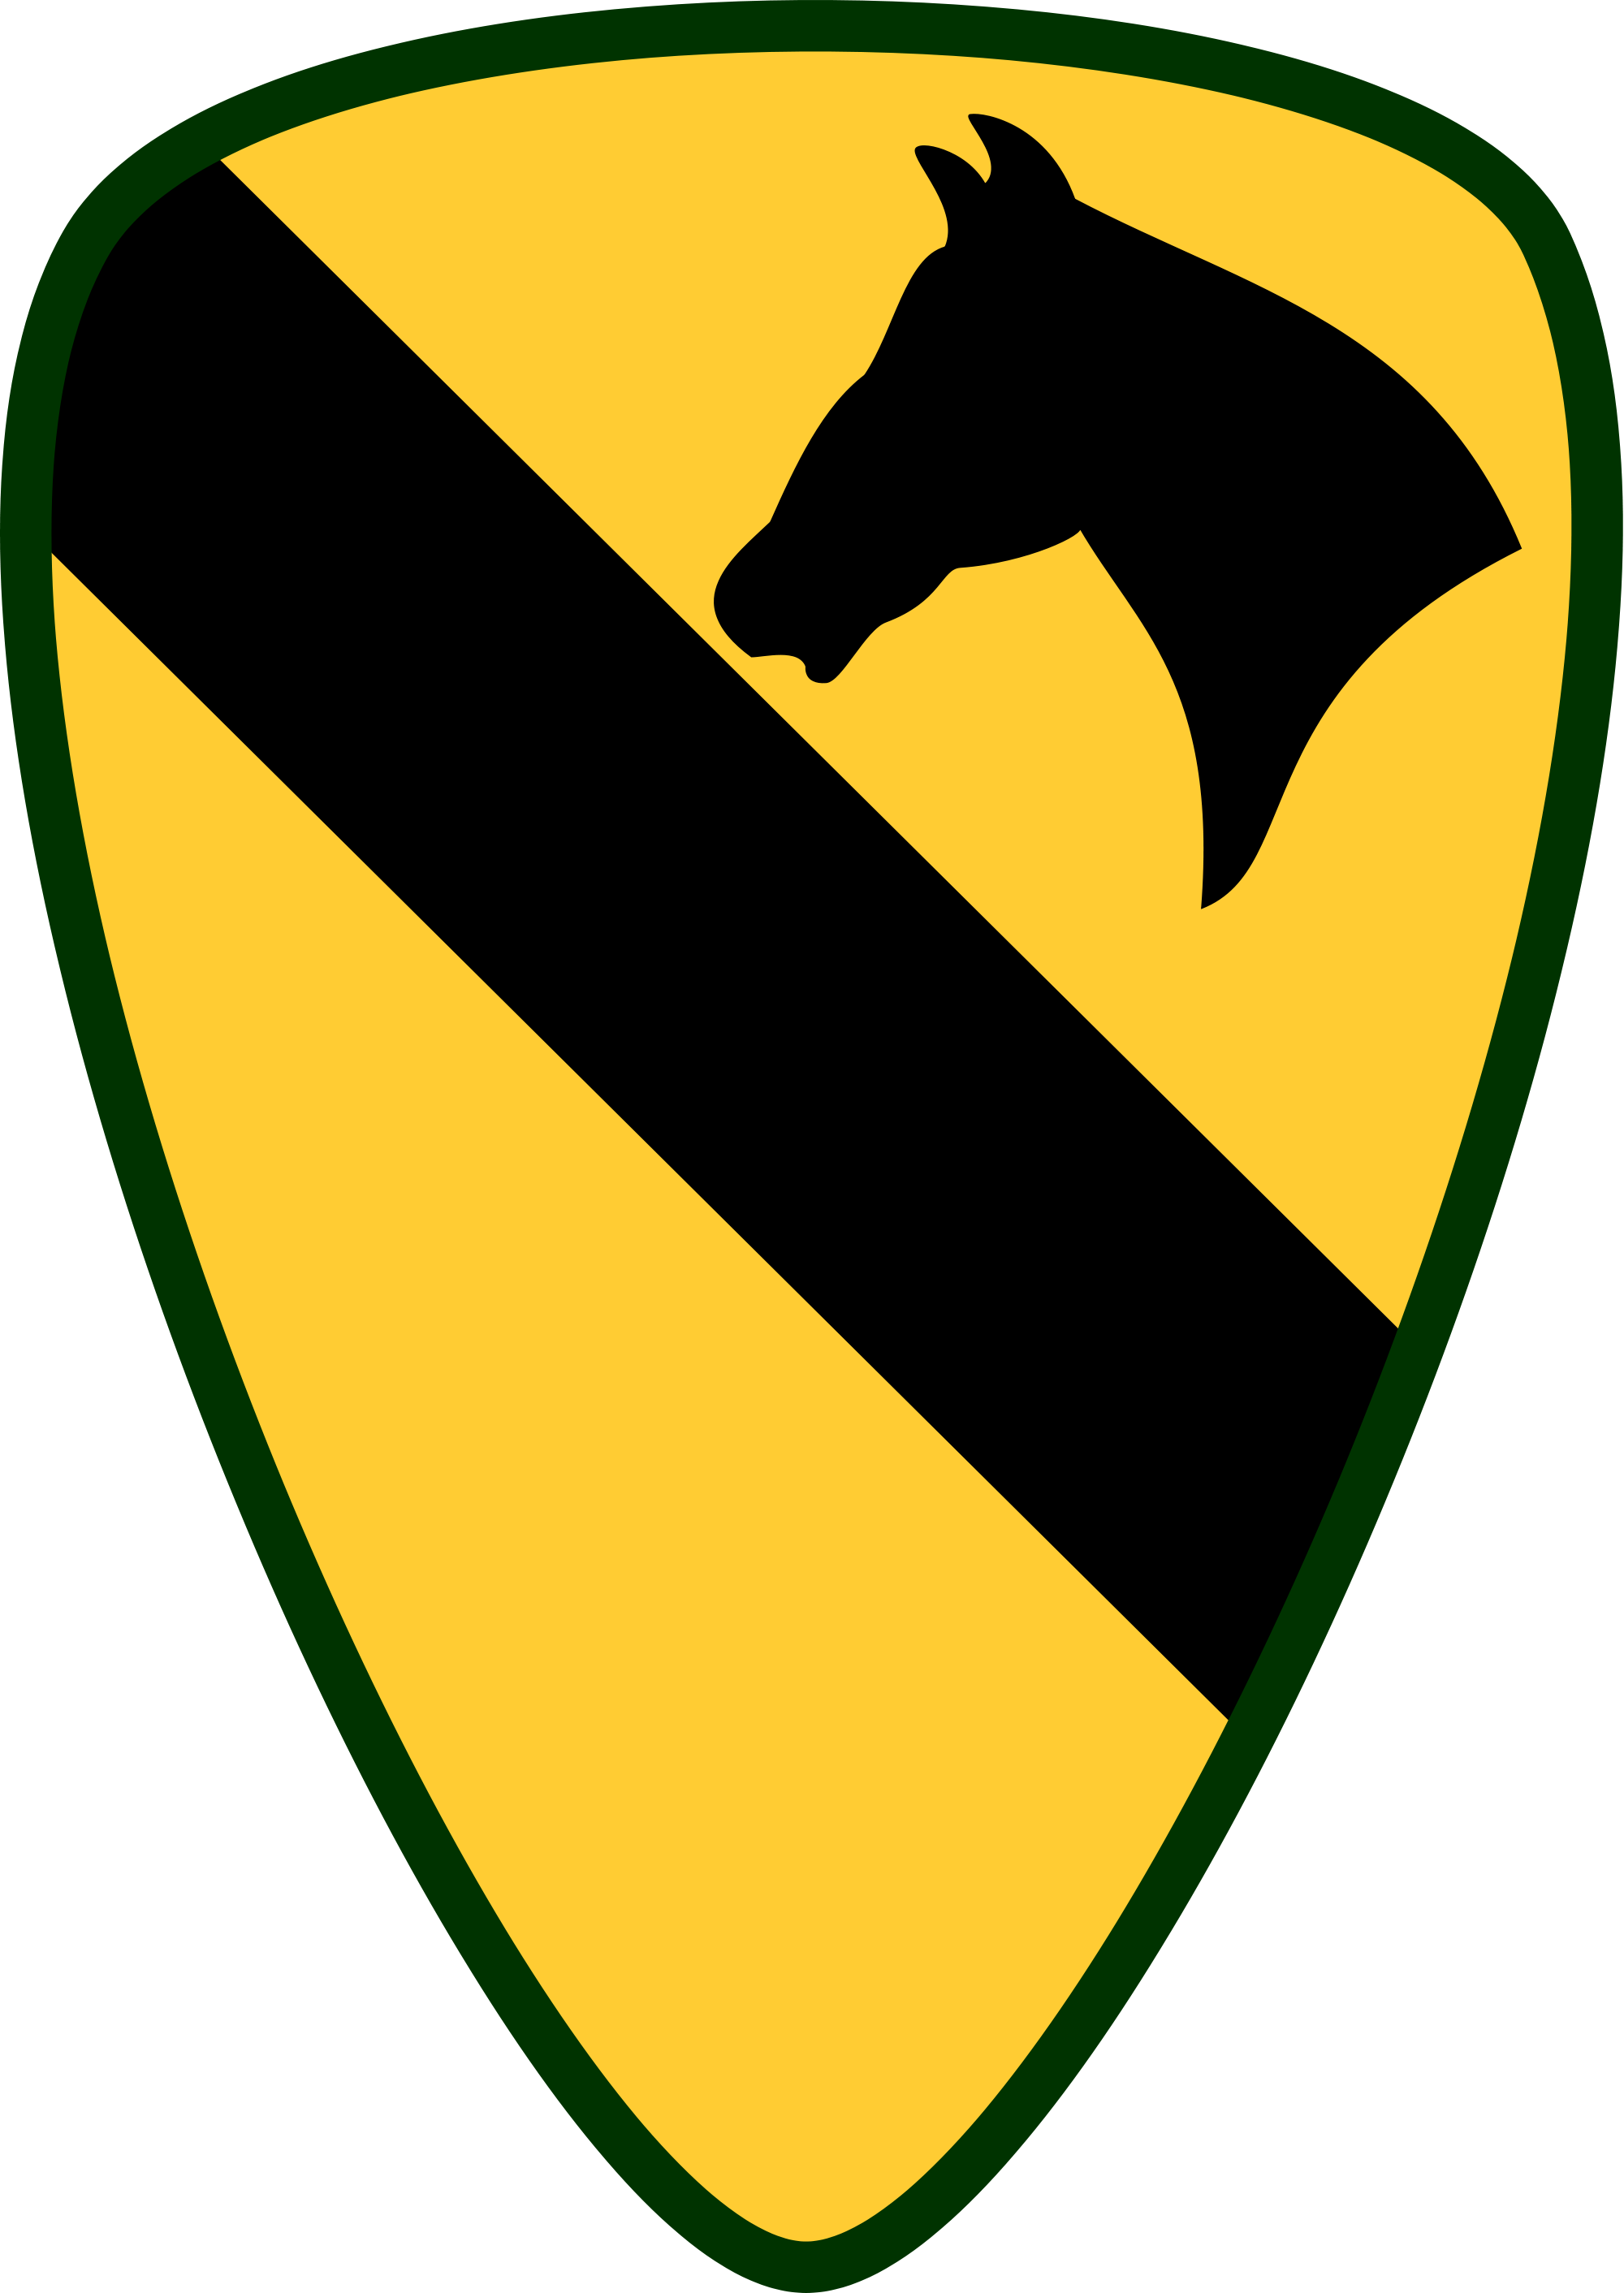 Soldiers clipart badge. Ist air cavalry division